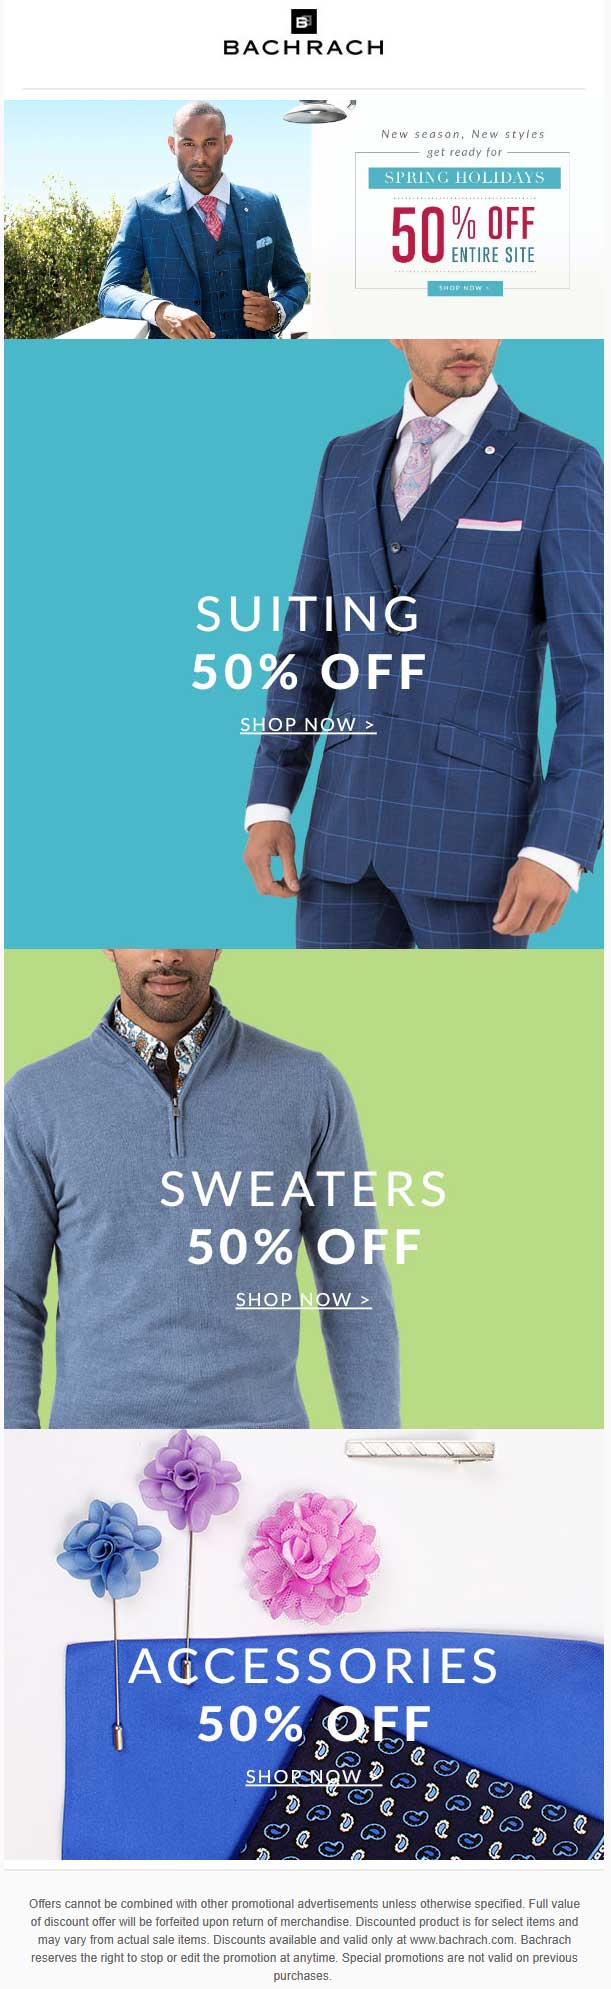 Bachrach Coupon December 2018 50% off everything online at Bachrach